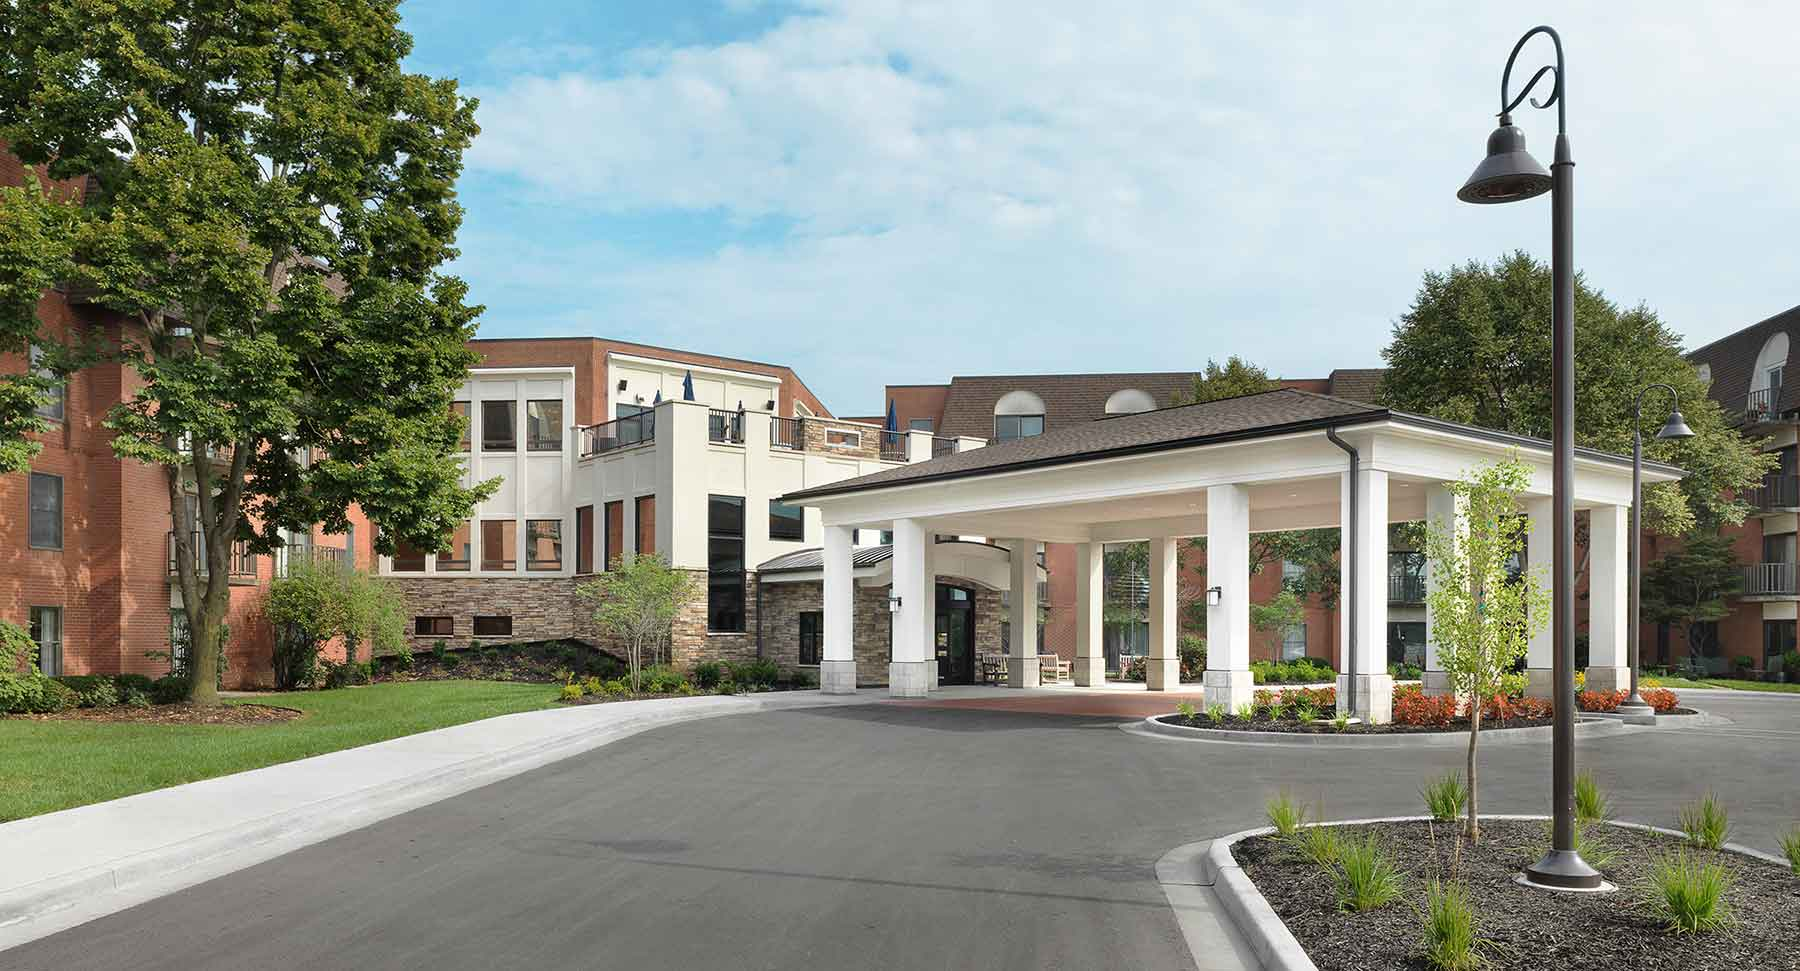 The front entry of Kingswood Senior Living Located in Kansas City, MO.